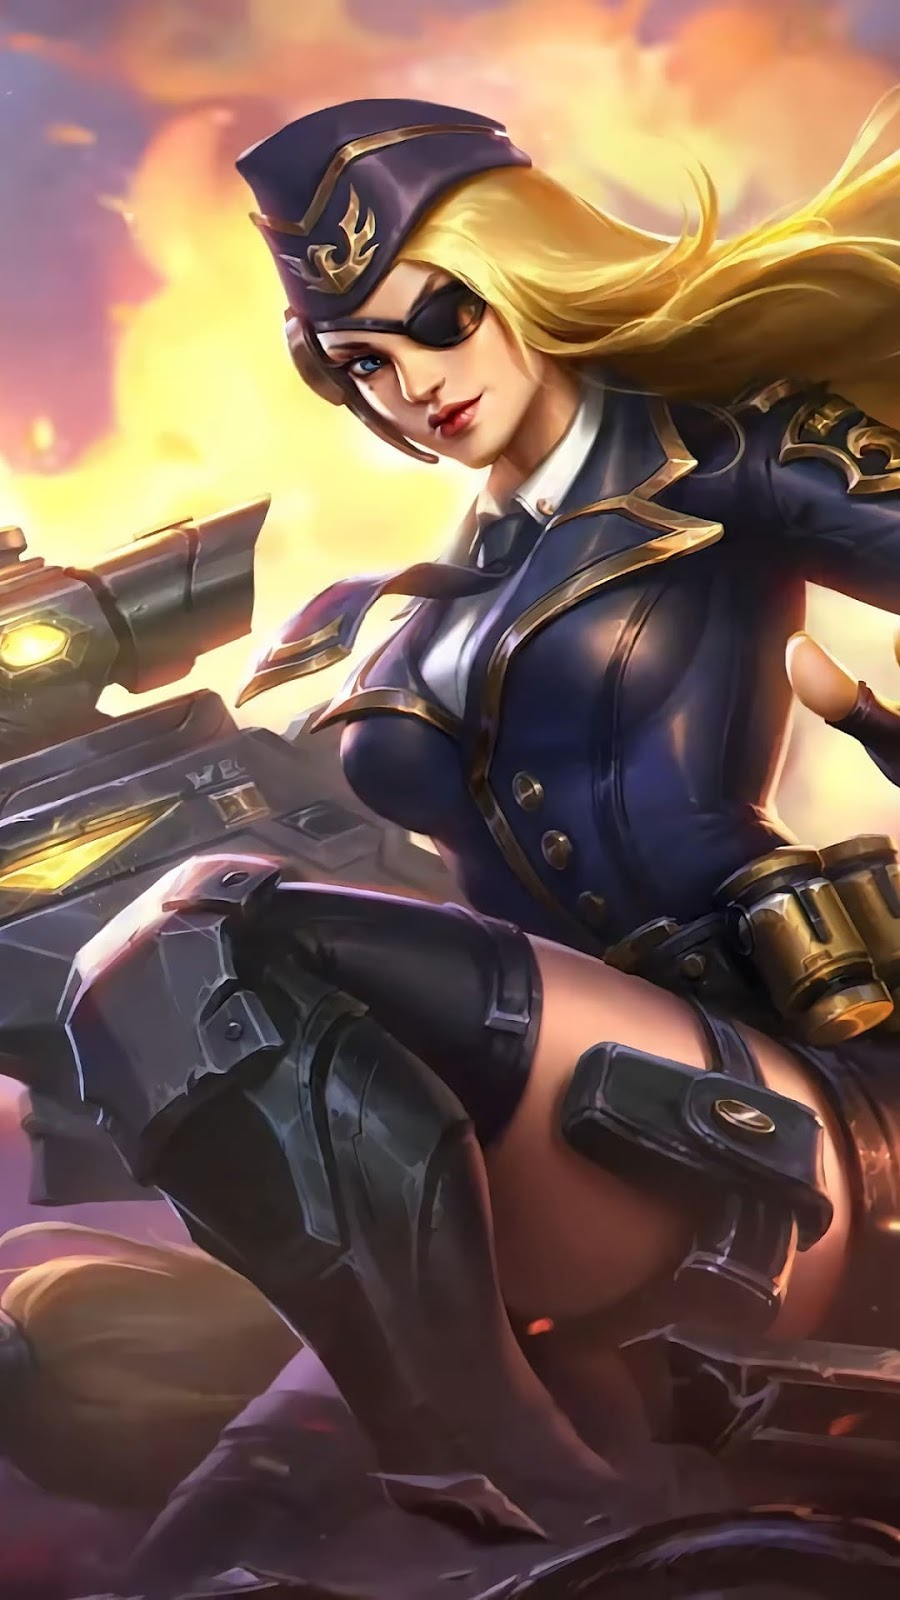 Wallpaper Lesley General Rosa Skin Mobile Legends HD for Android and iOS